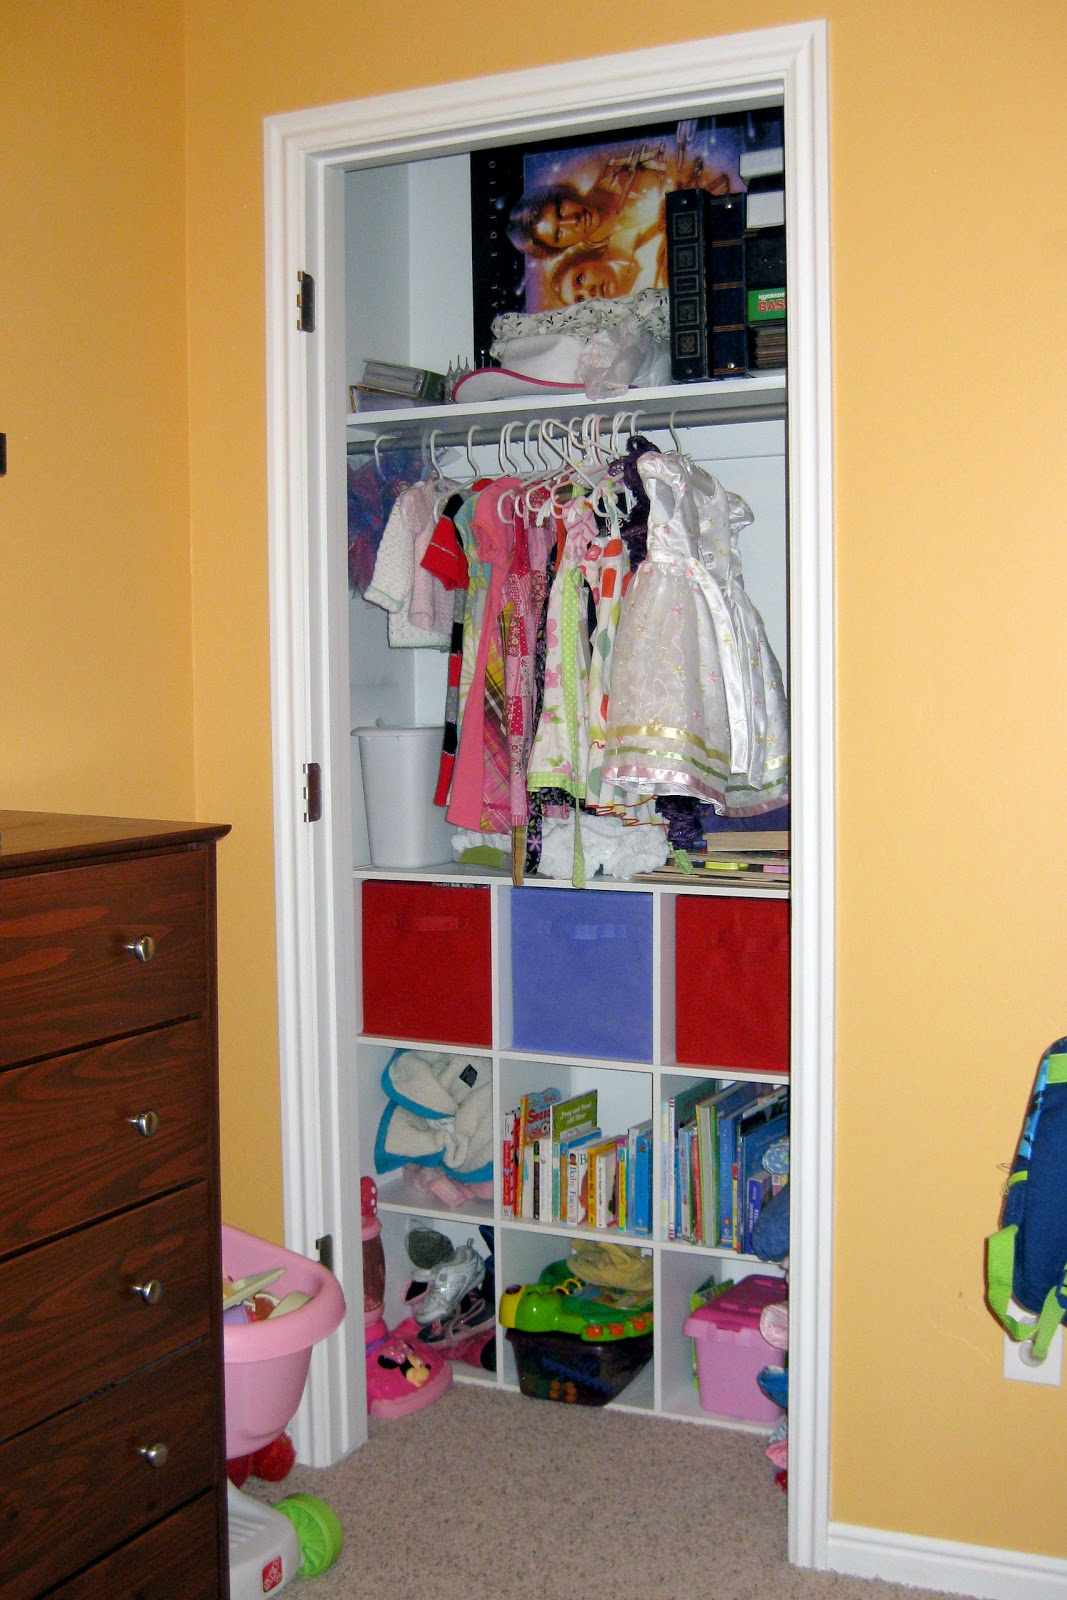 Space Saving Closet Doors Save Floor Space By Converting